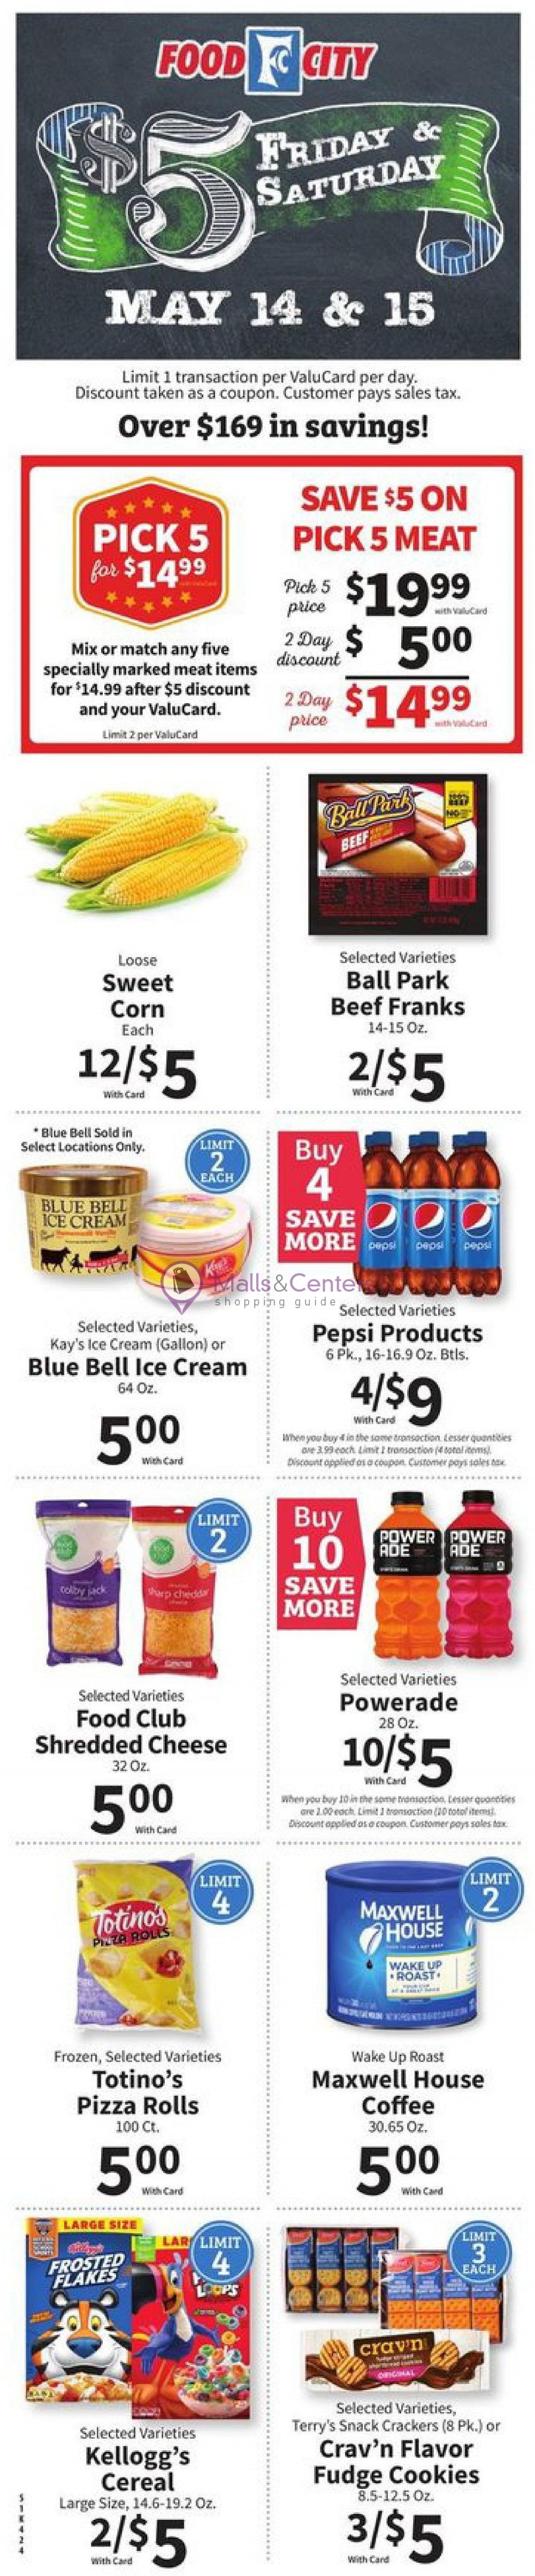 weekly ads Food City - page 1 - mallscenters.com